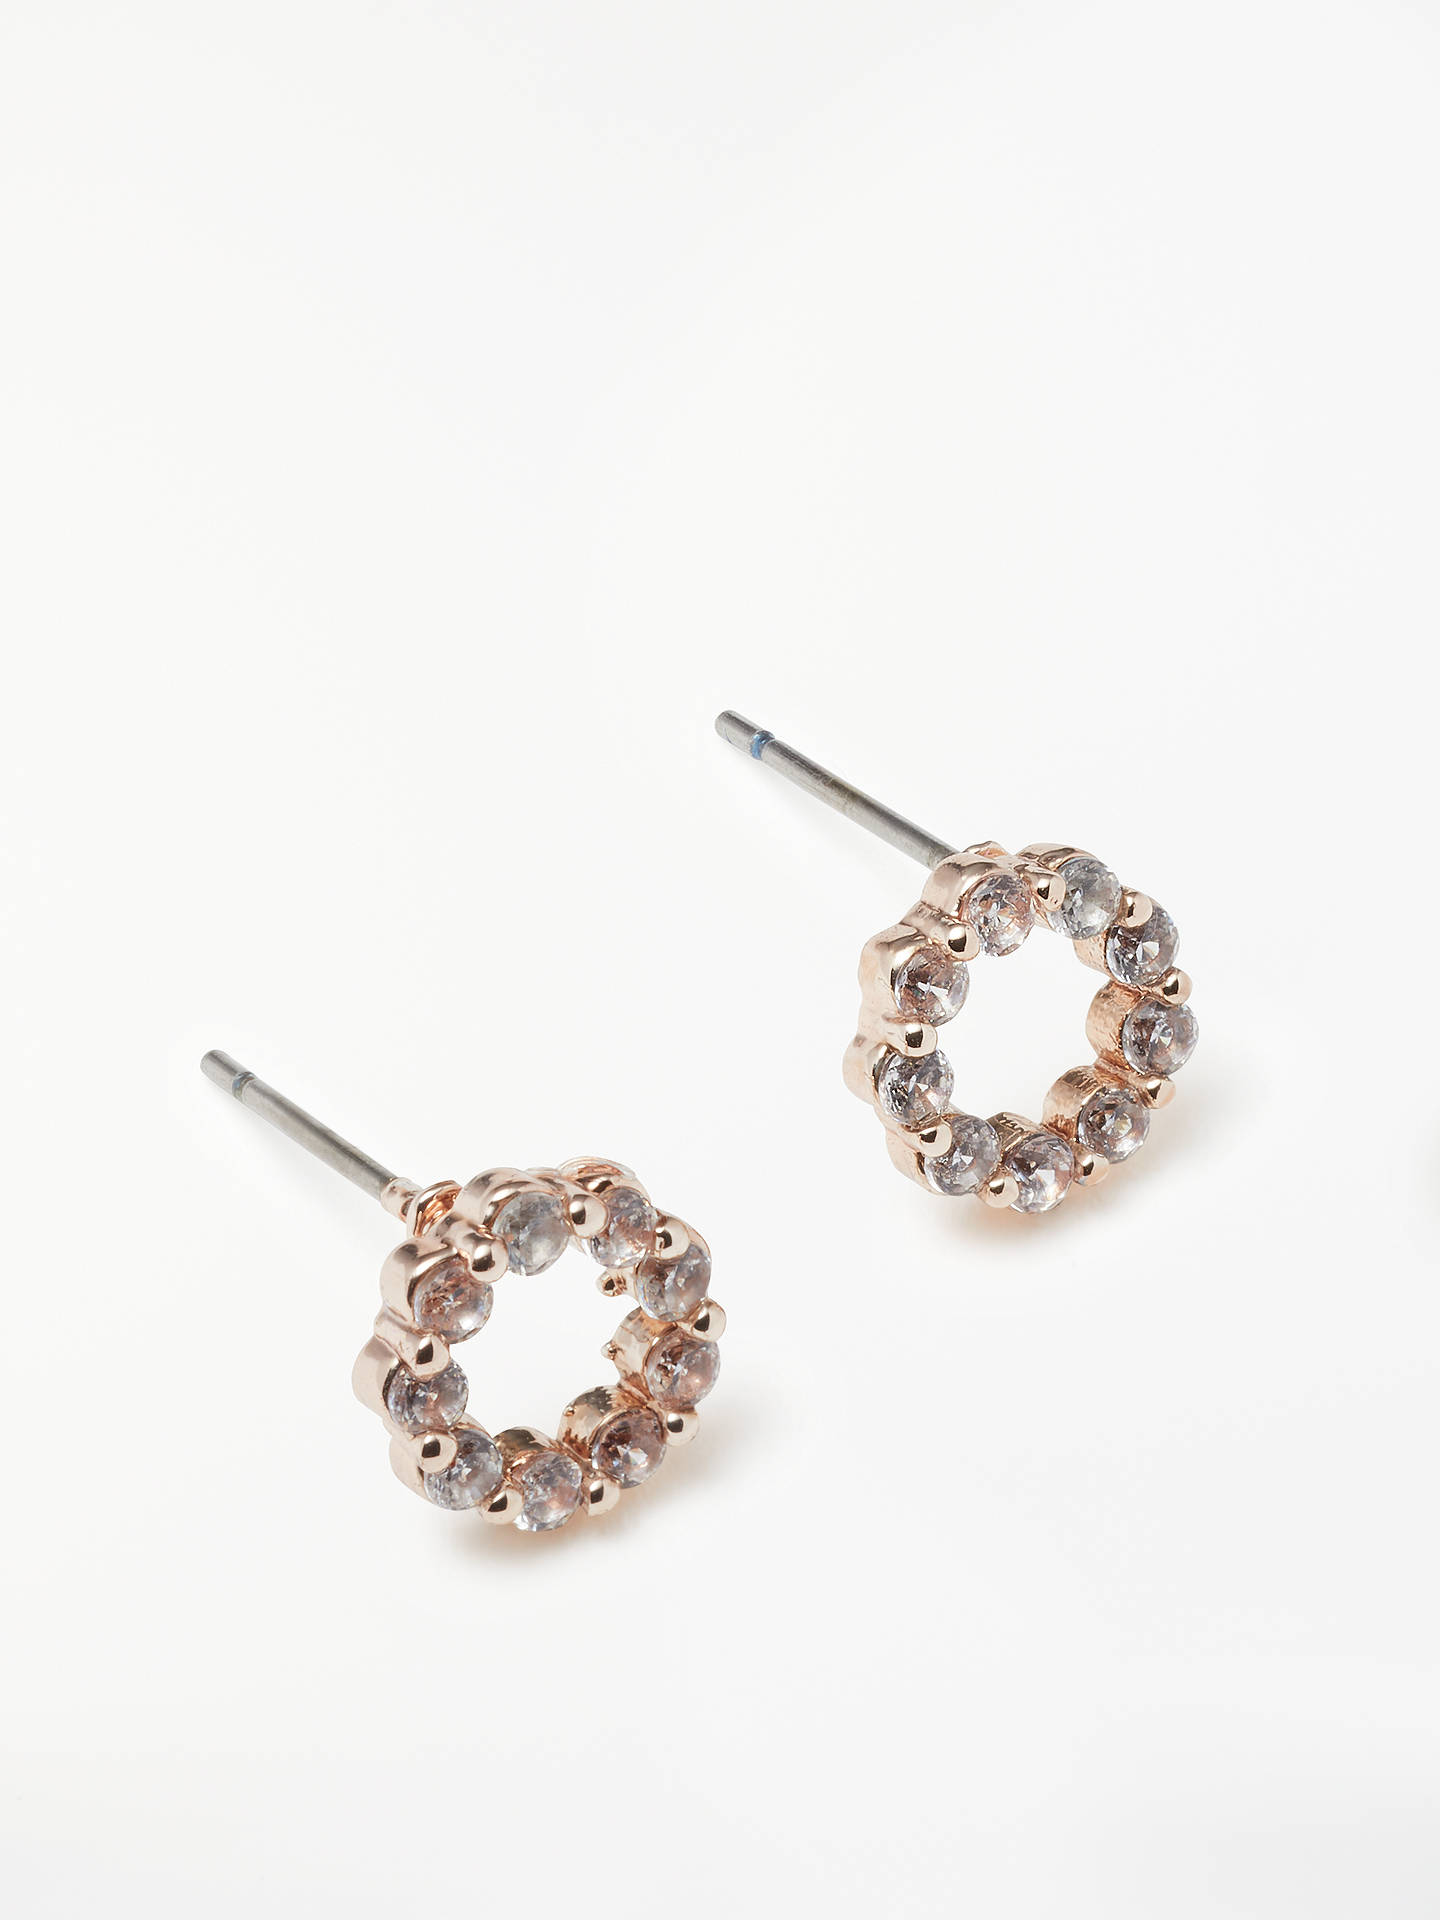 449d50ca1 Buy John Lewis & Partners Open Circle Cubic Zirconia Stud Earrings, Rose  Gold Online at ...